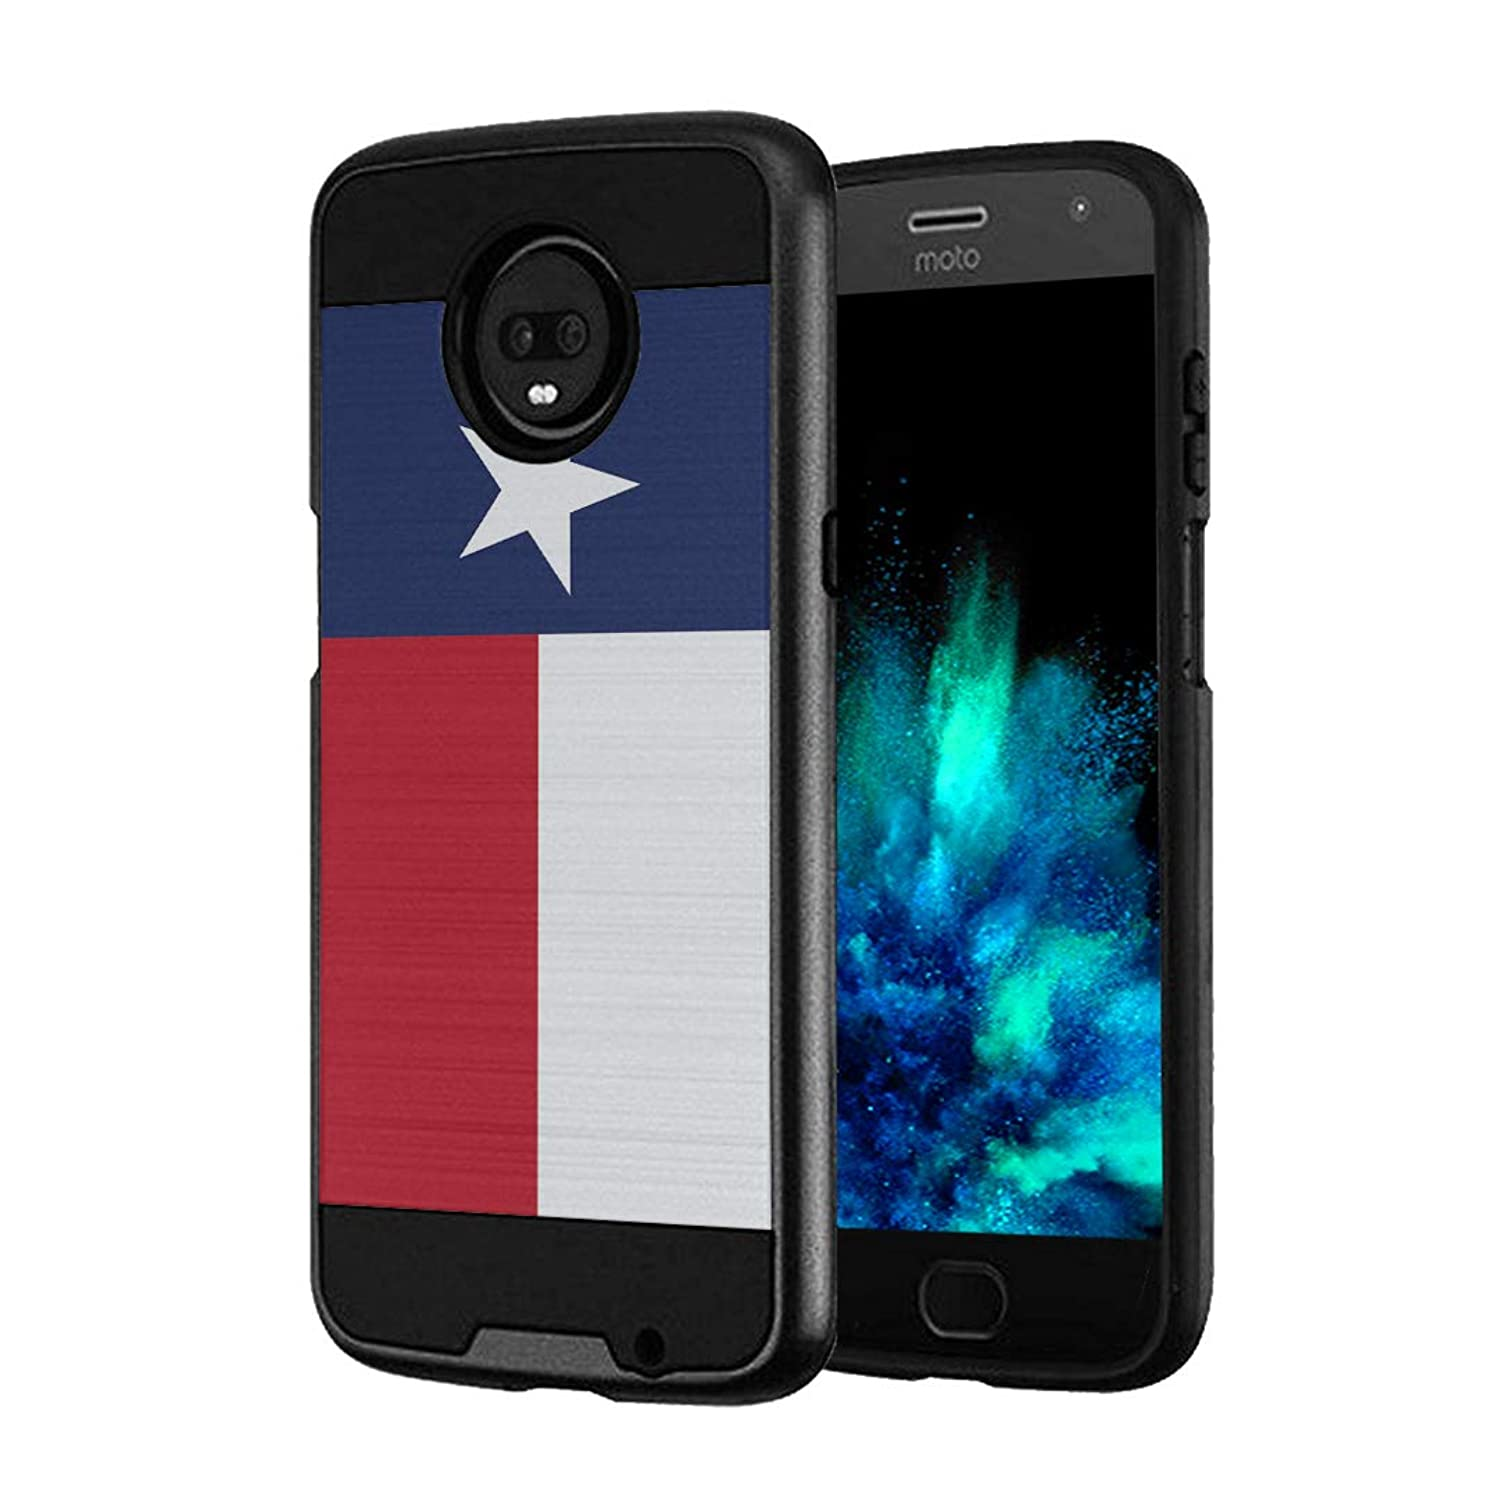 Capsule Case Compatible with Moto Z3, Moto Z3 Play (2018) [Hybrid Fusion Dual Layer Slick Armor Case Black] for Motorola Moto Z3 - (Texas Flag)